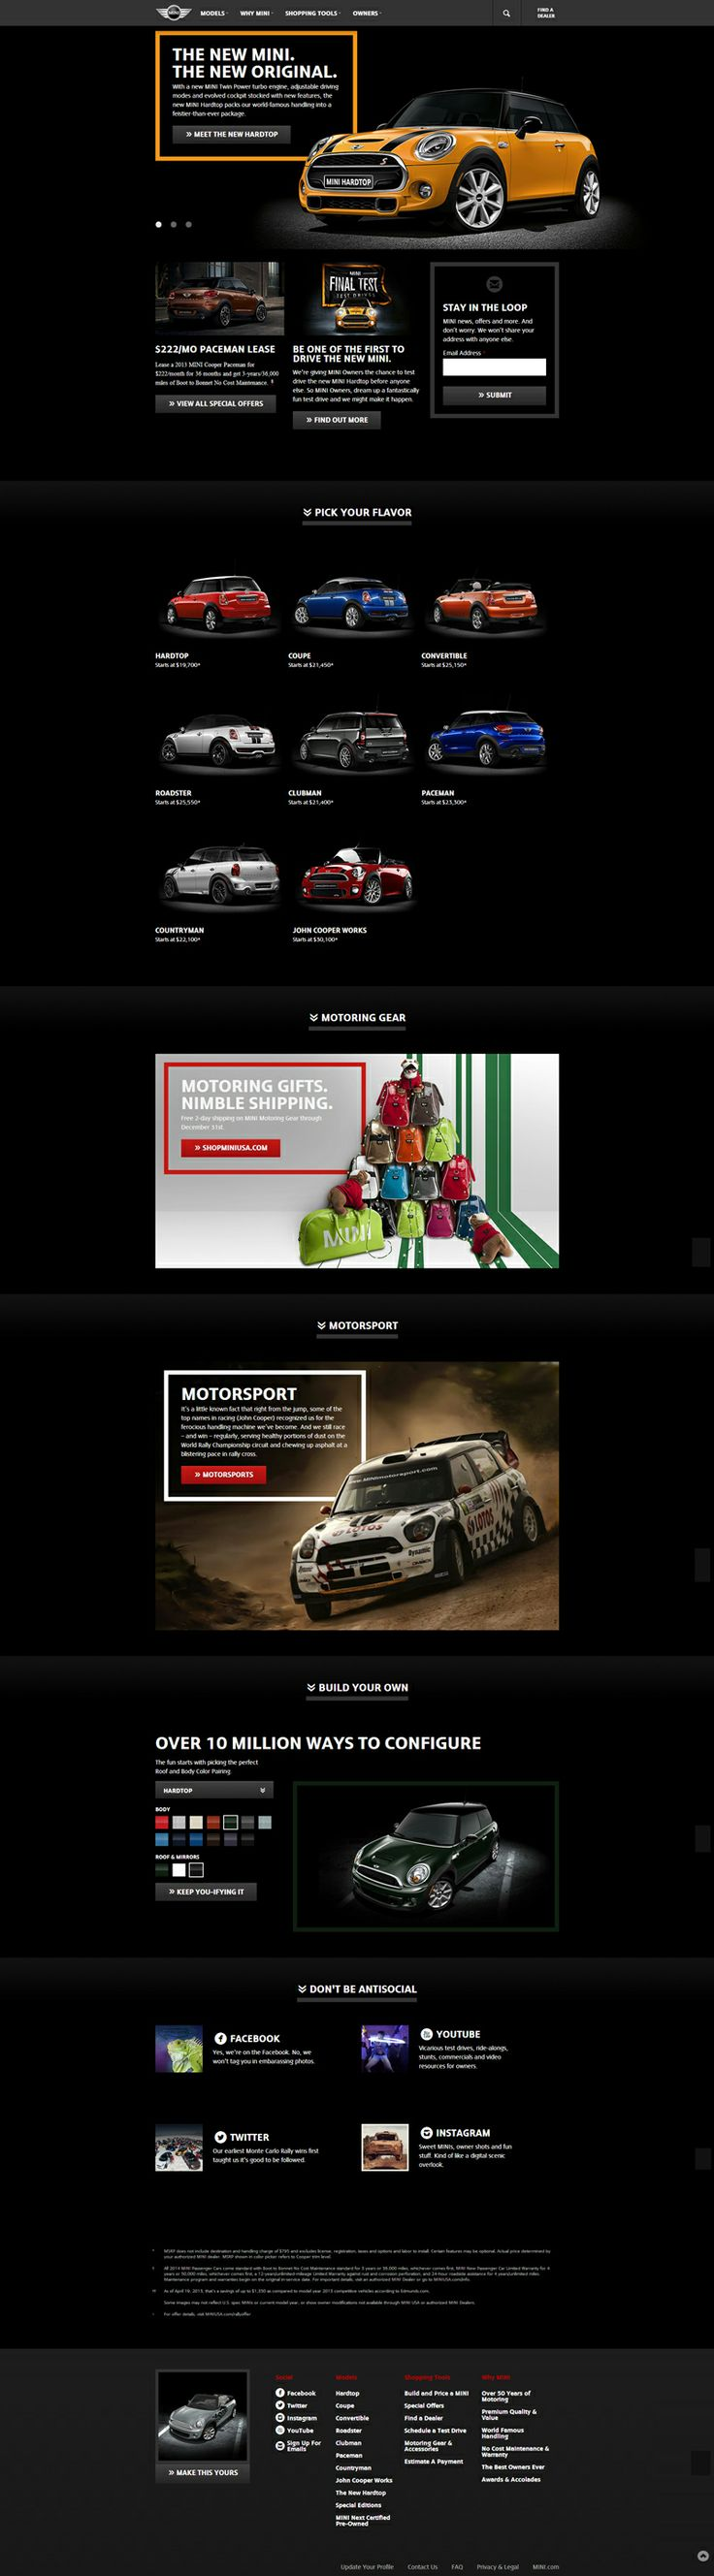 Mini Cooper - Car Website Designs For Your Inspiration